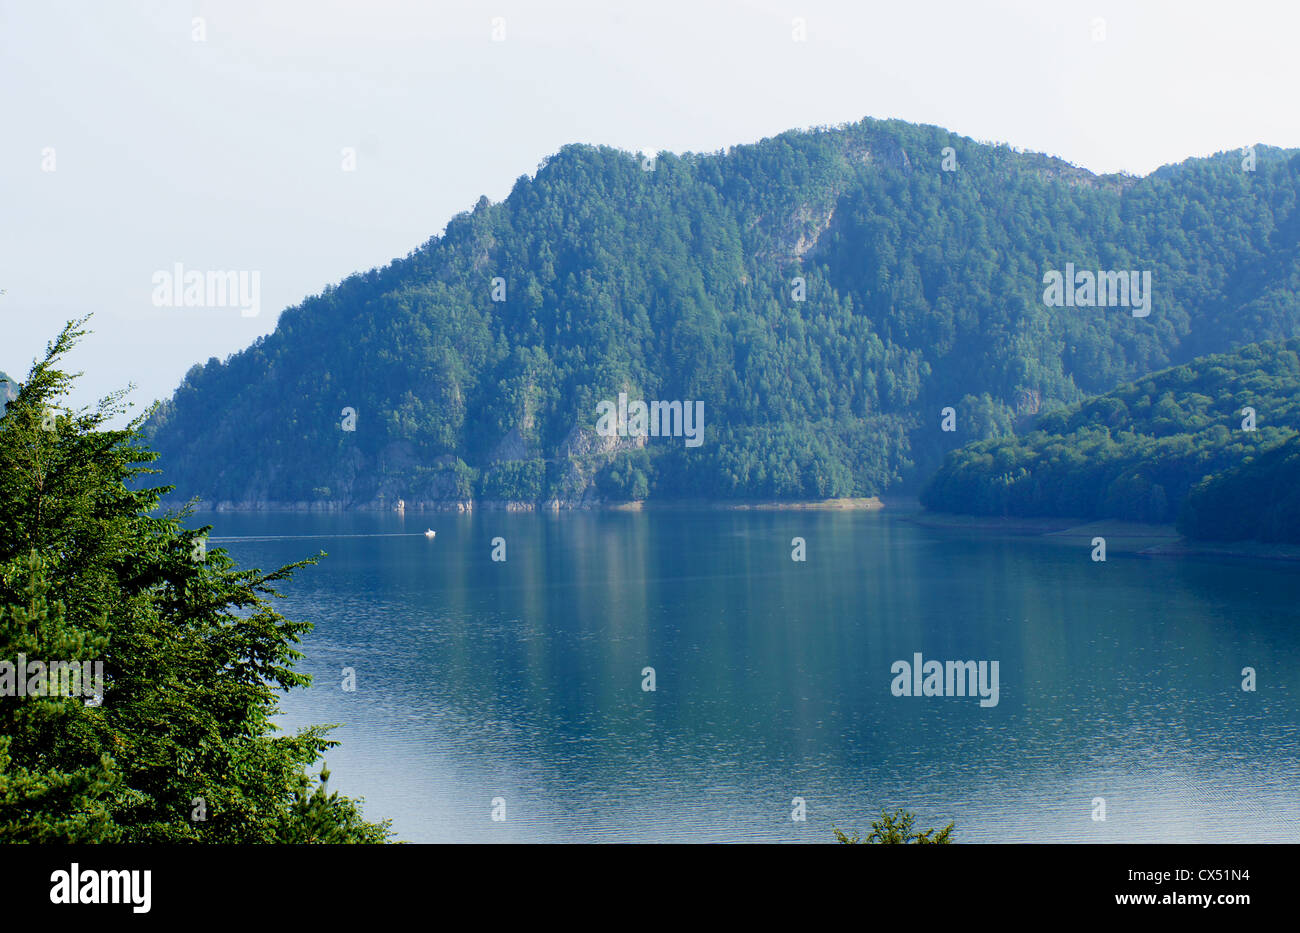 Panorama view of the Vidraru lake in Fagaras mountains of Romania with a boat on the water - Stock Image